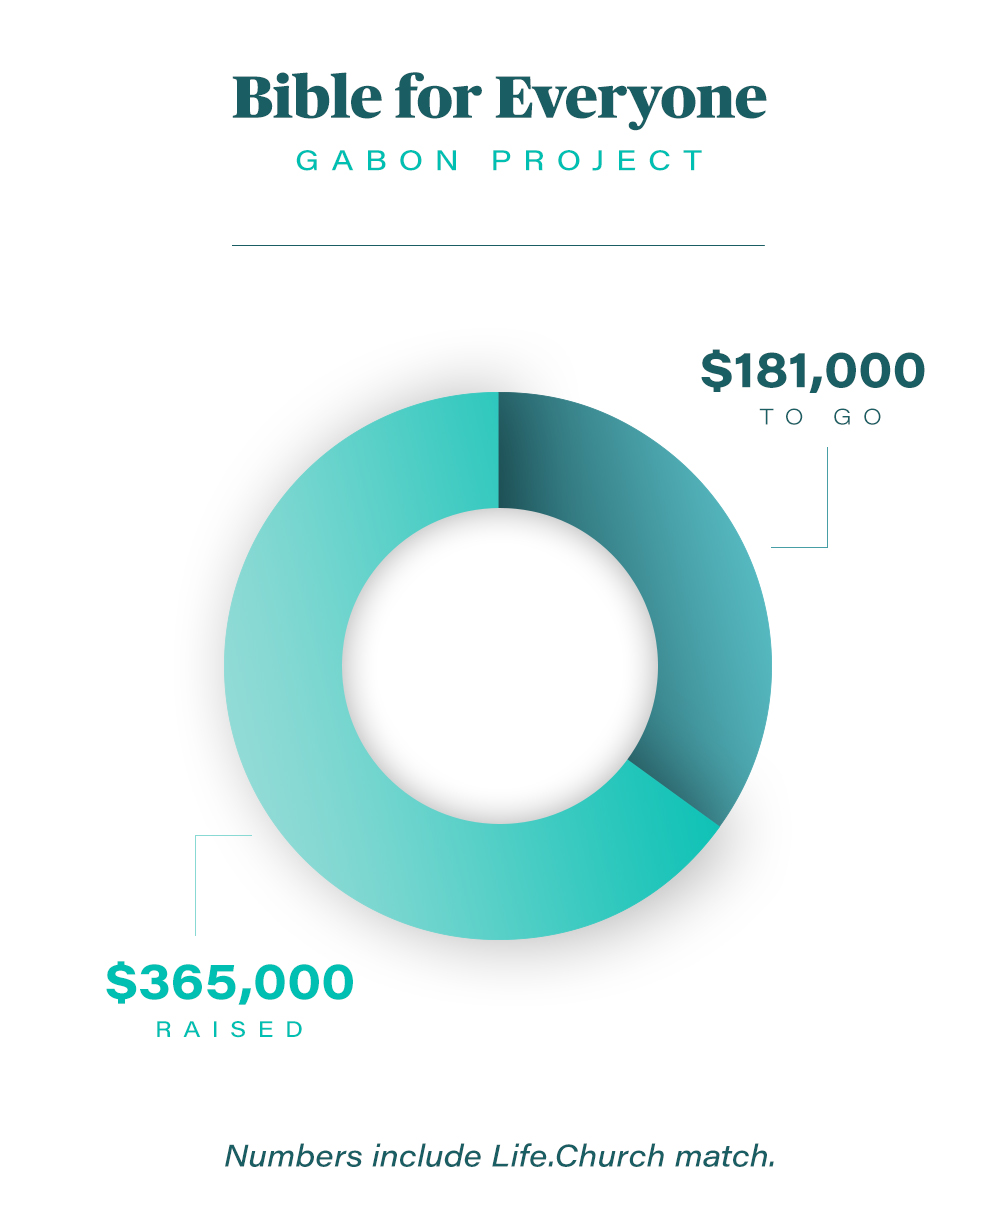 Progress Chart - $355,000 Raised - $191,000 To Go